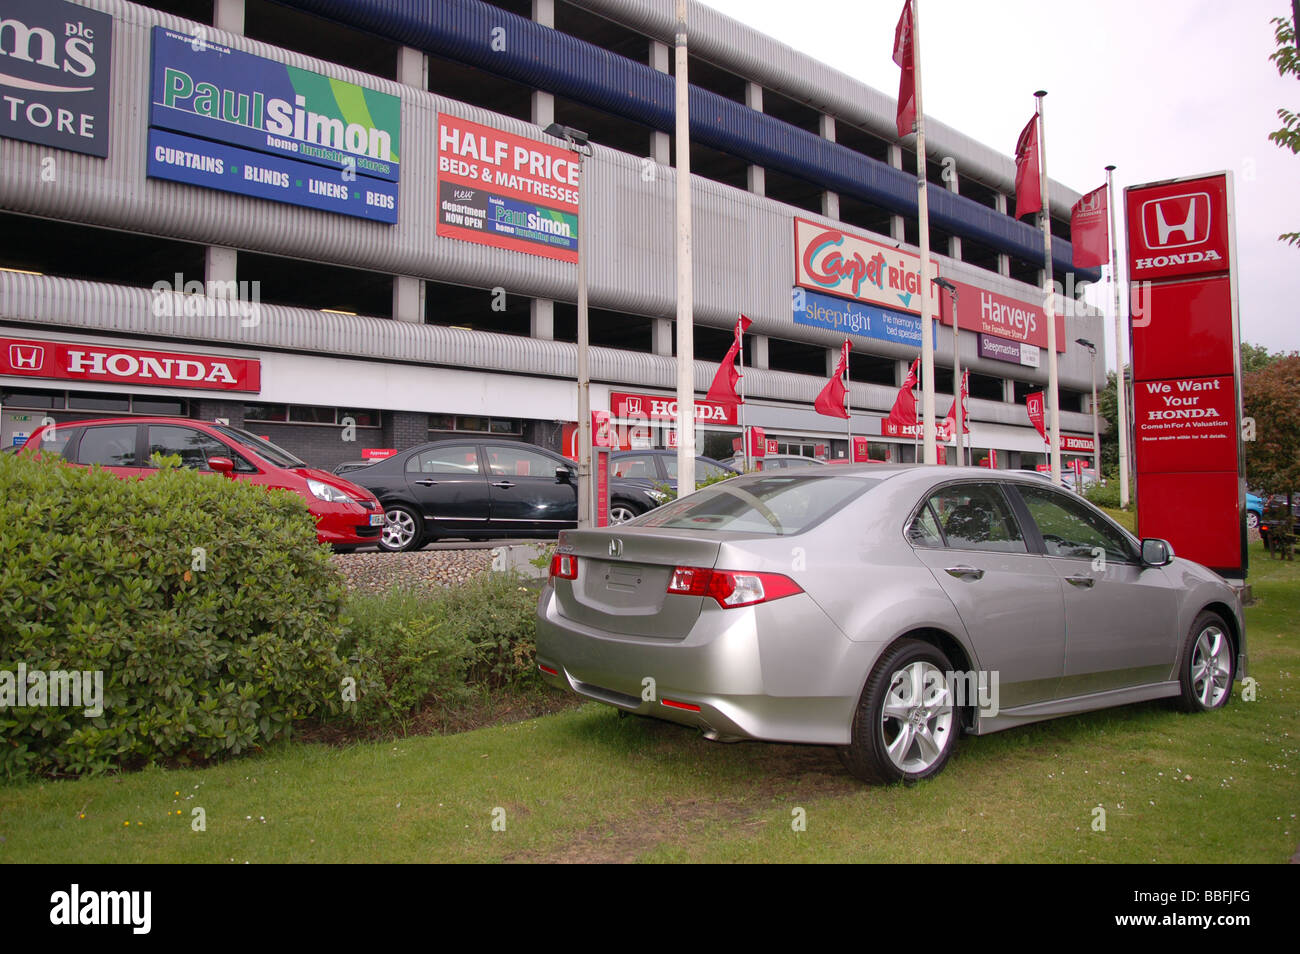 A New Honda Accord Parked Outside The Honda Dealers At Colindale, London,  England,